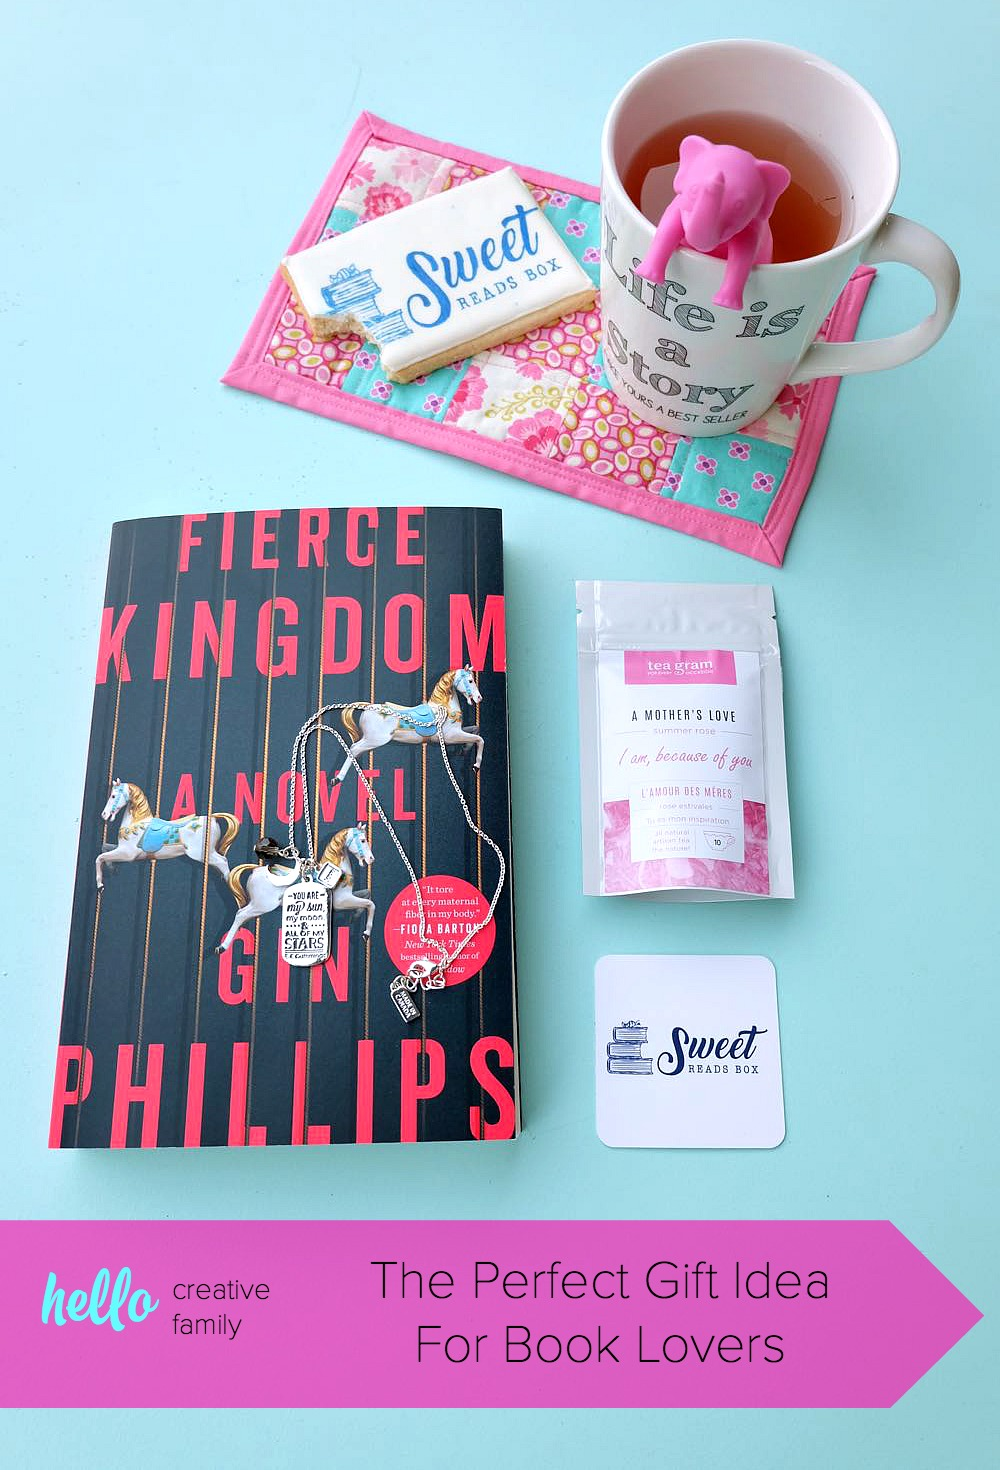 Looking for the perfect gift idea for book lovers in your life? We're sharing the Sweet Reads Box & why it's a great gift for yourself or your book club! Perfect for Christmas, Mother's Day, Birthdays or for a mama to be at her baby shower! #giftidea #books